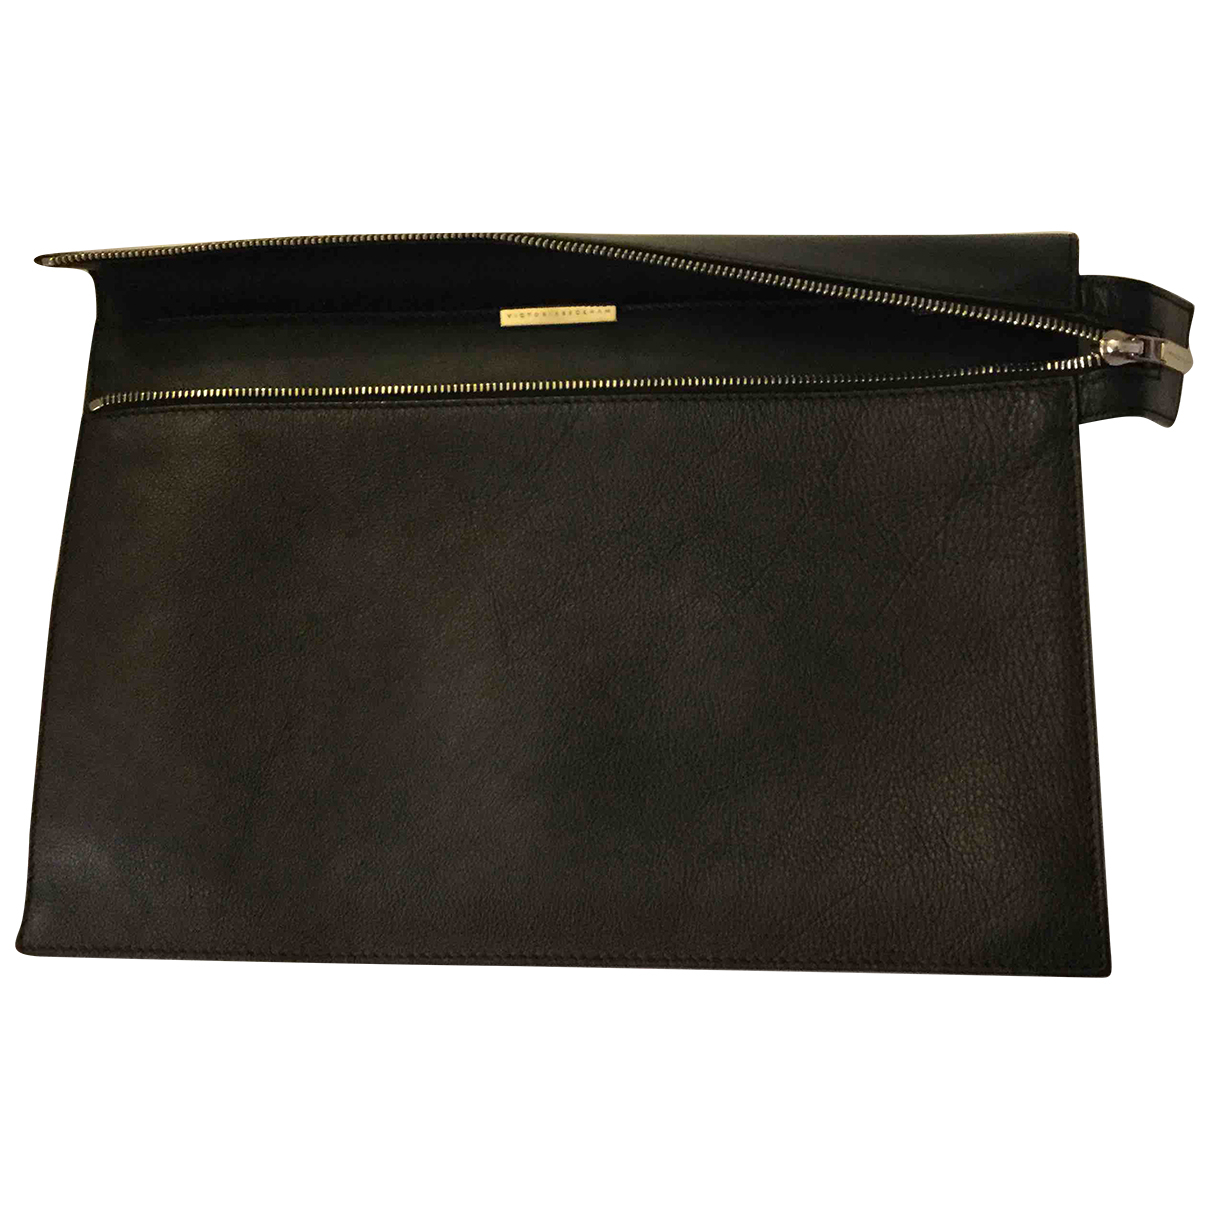 Victoria Beckham N Black Leather Clutch bag for Women N